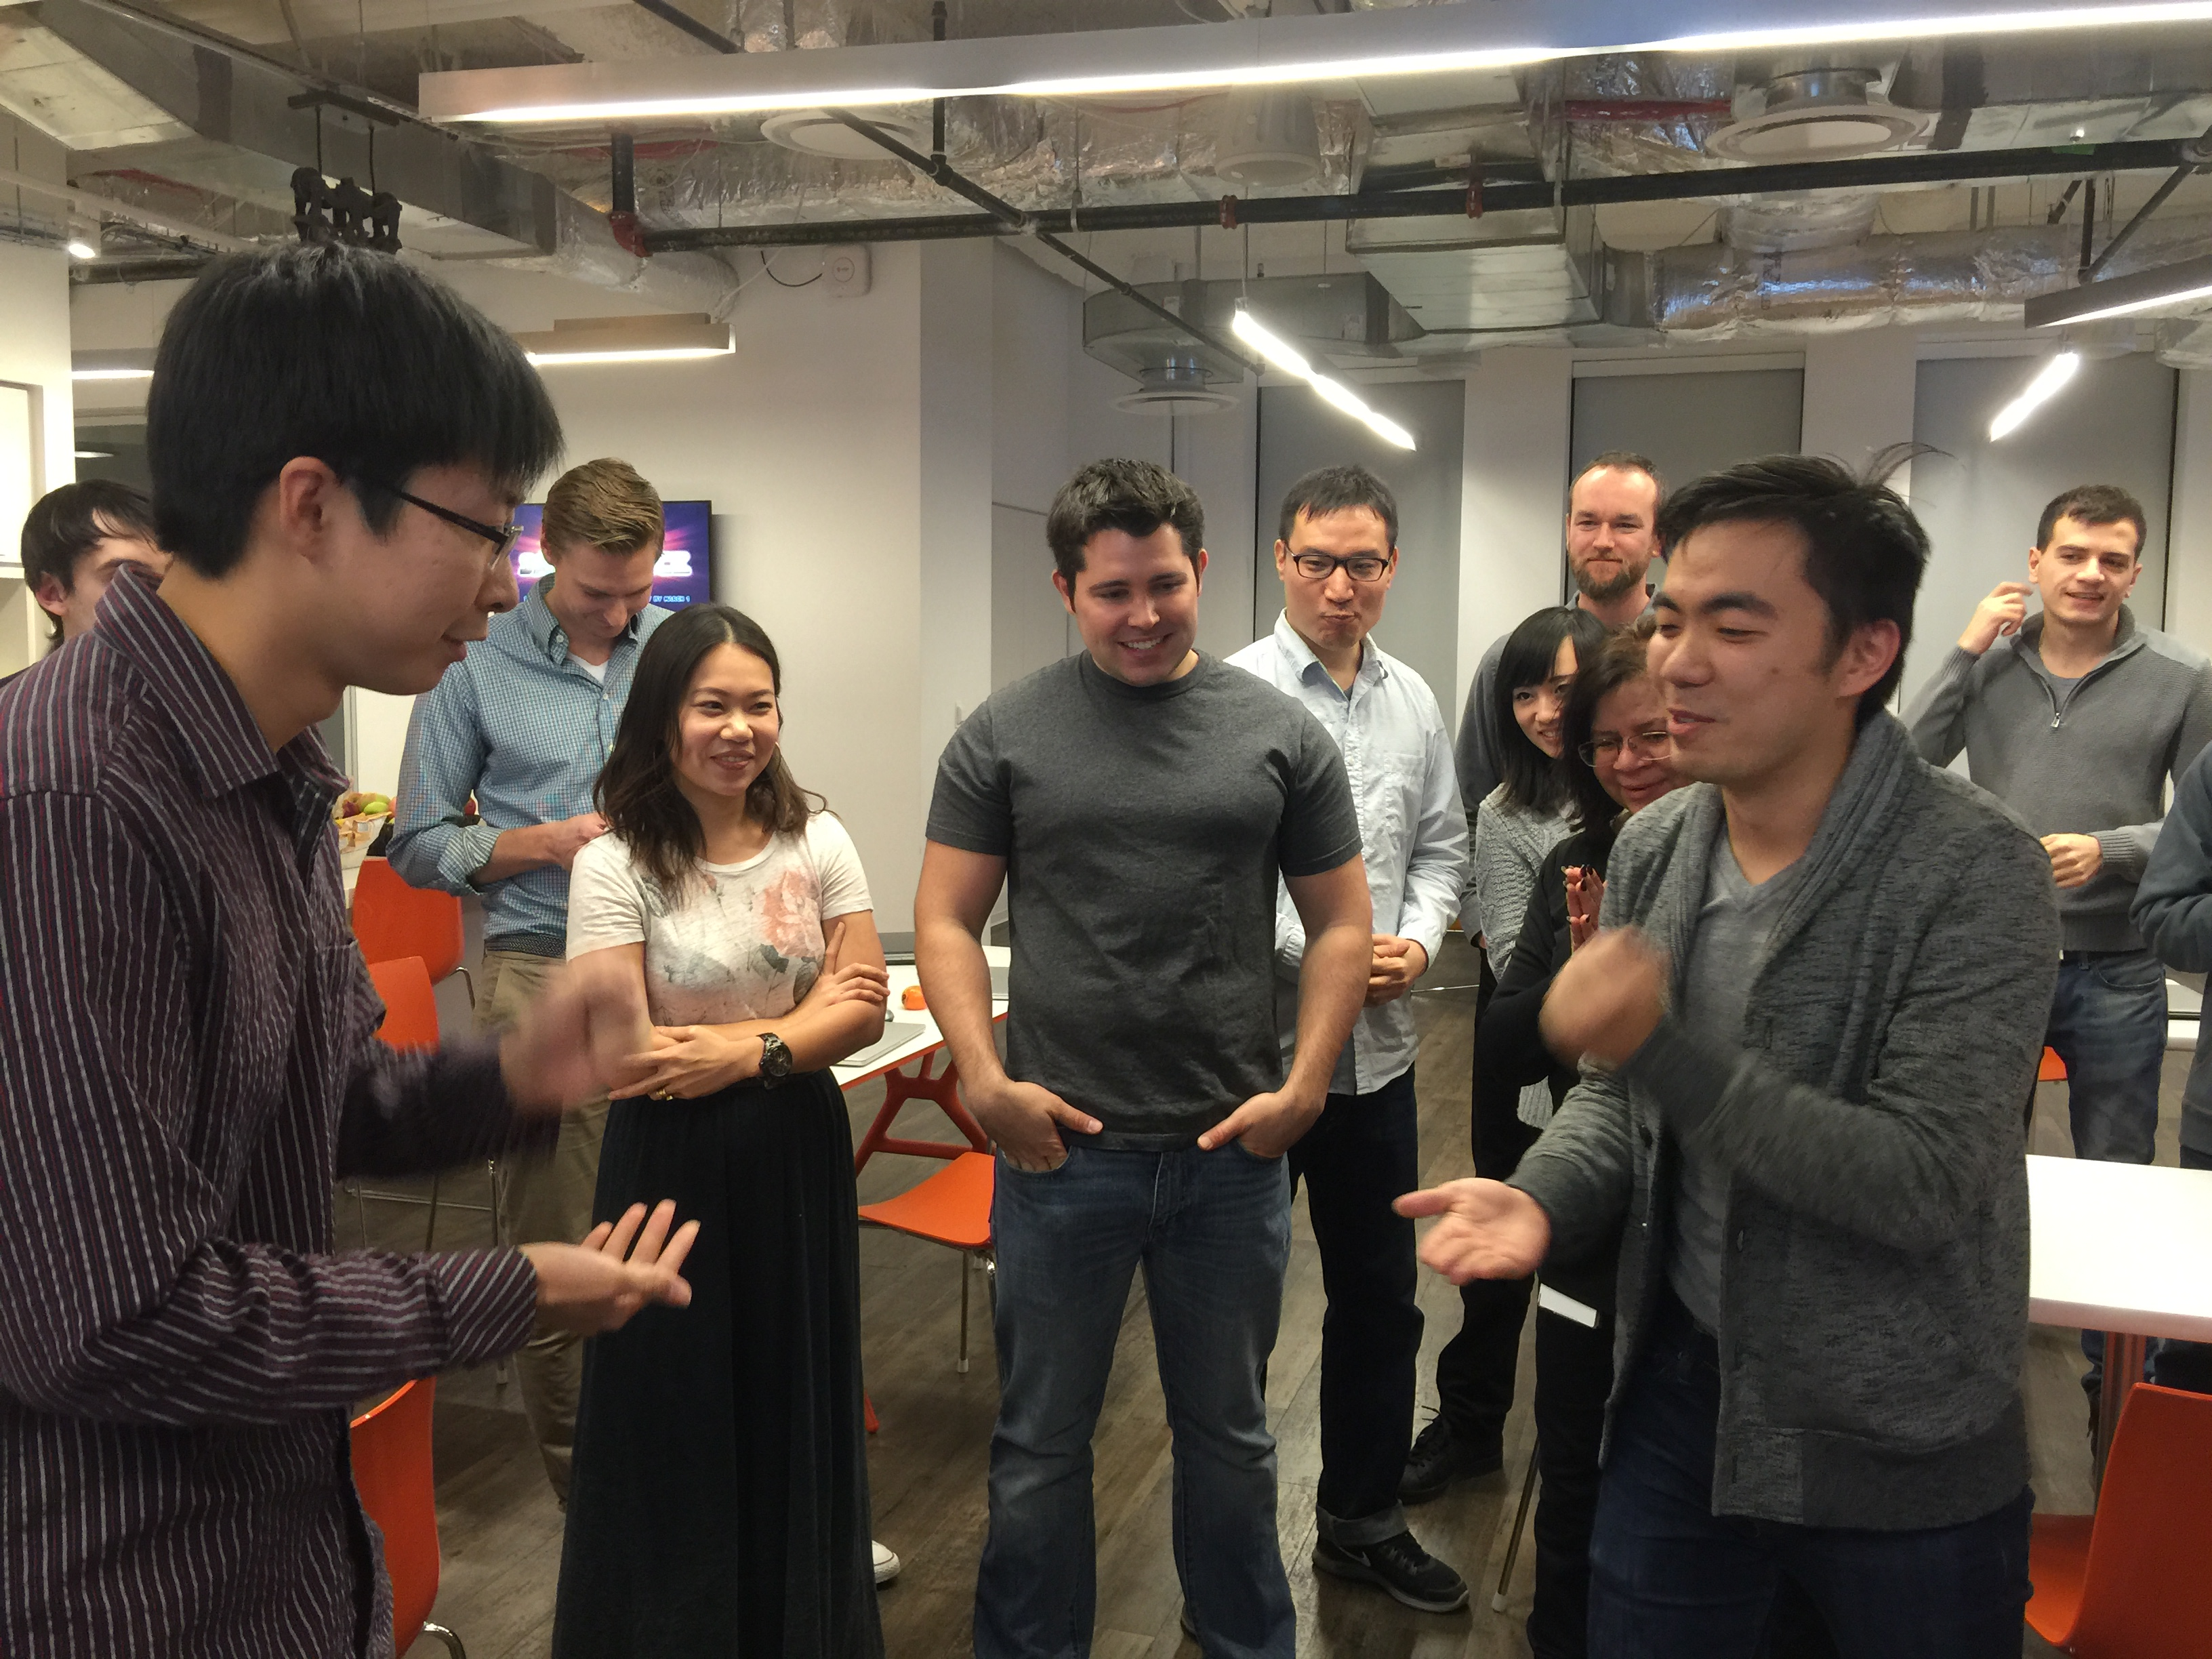 The hackathon kicked off with an intense game of rock-paper-scissors to get our competitive juices flowing.